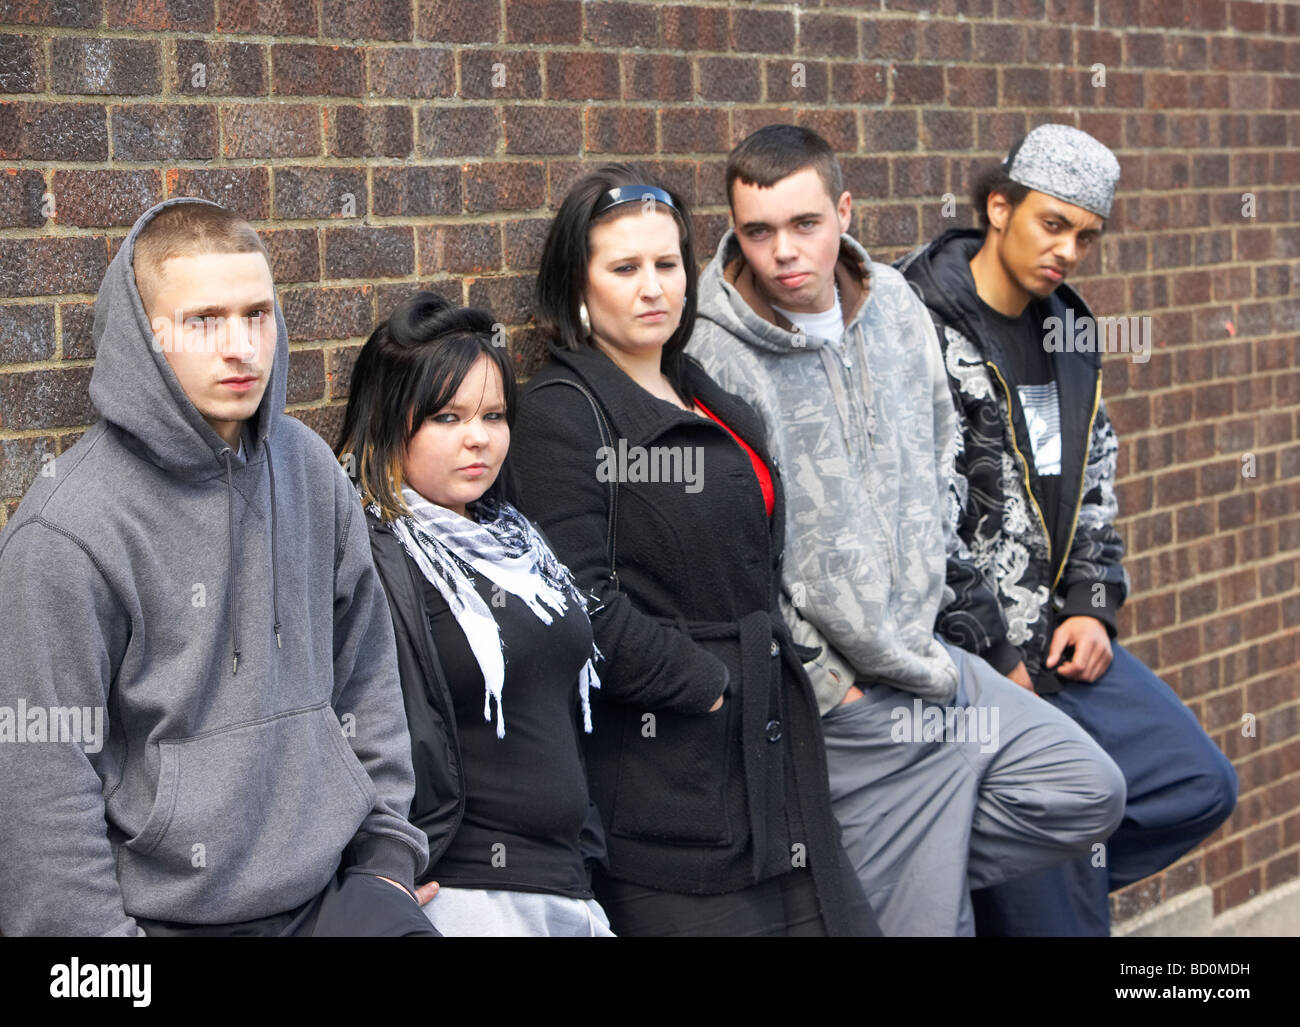 Gang Of Youths Leaning On Wall - Stock Image